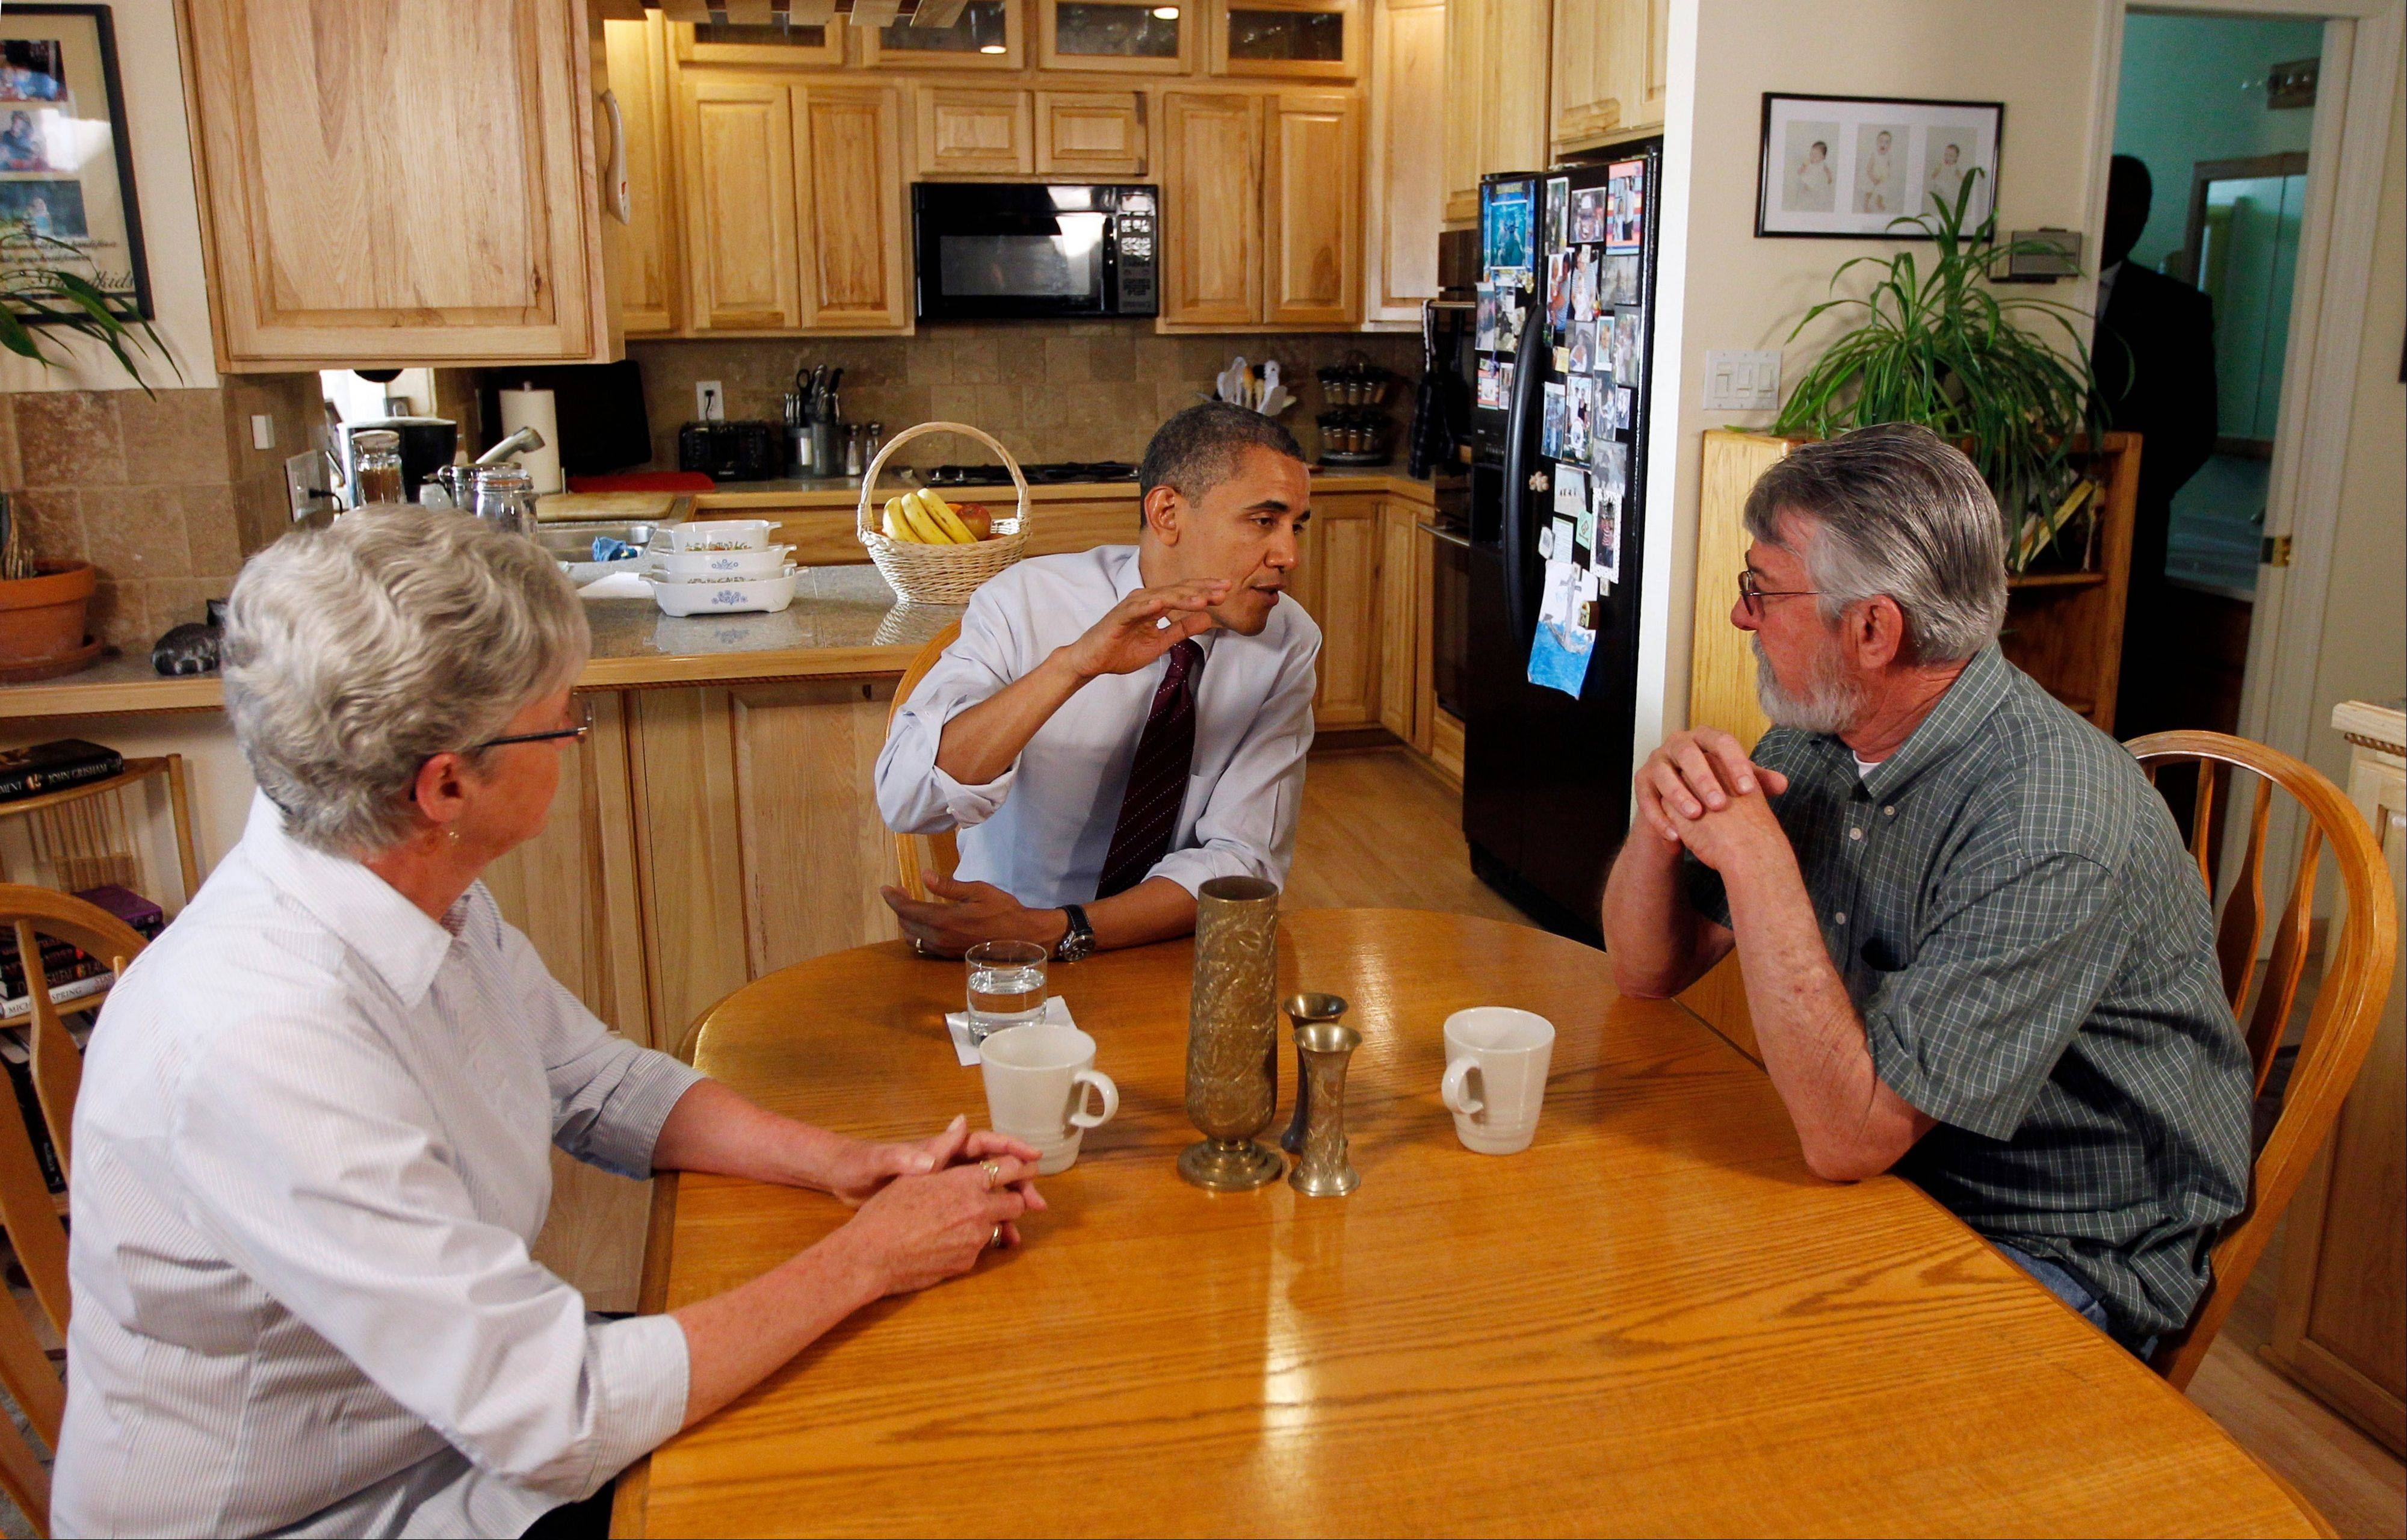 President Barack Obama meets with Val and Paul Keller in their home in Reno, Nev., on May 11. Obama and his Republican rival, Mitt Romney, have visited the state, competing strenuously for Nevada's six electoral votes in what has become one of the most intense swing-state contests.